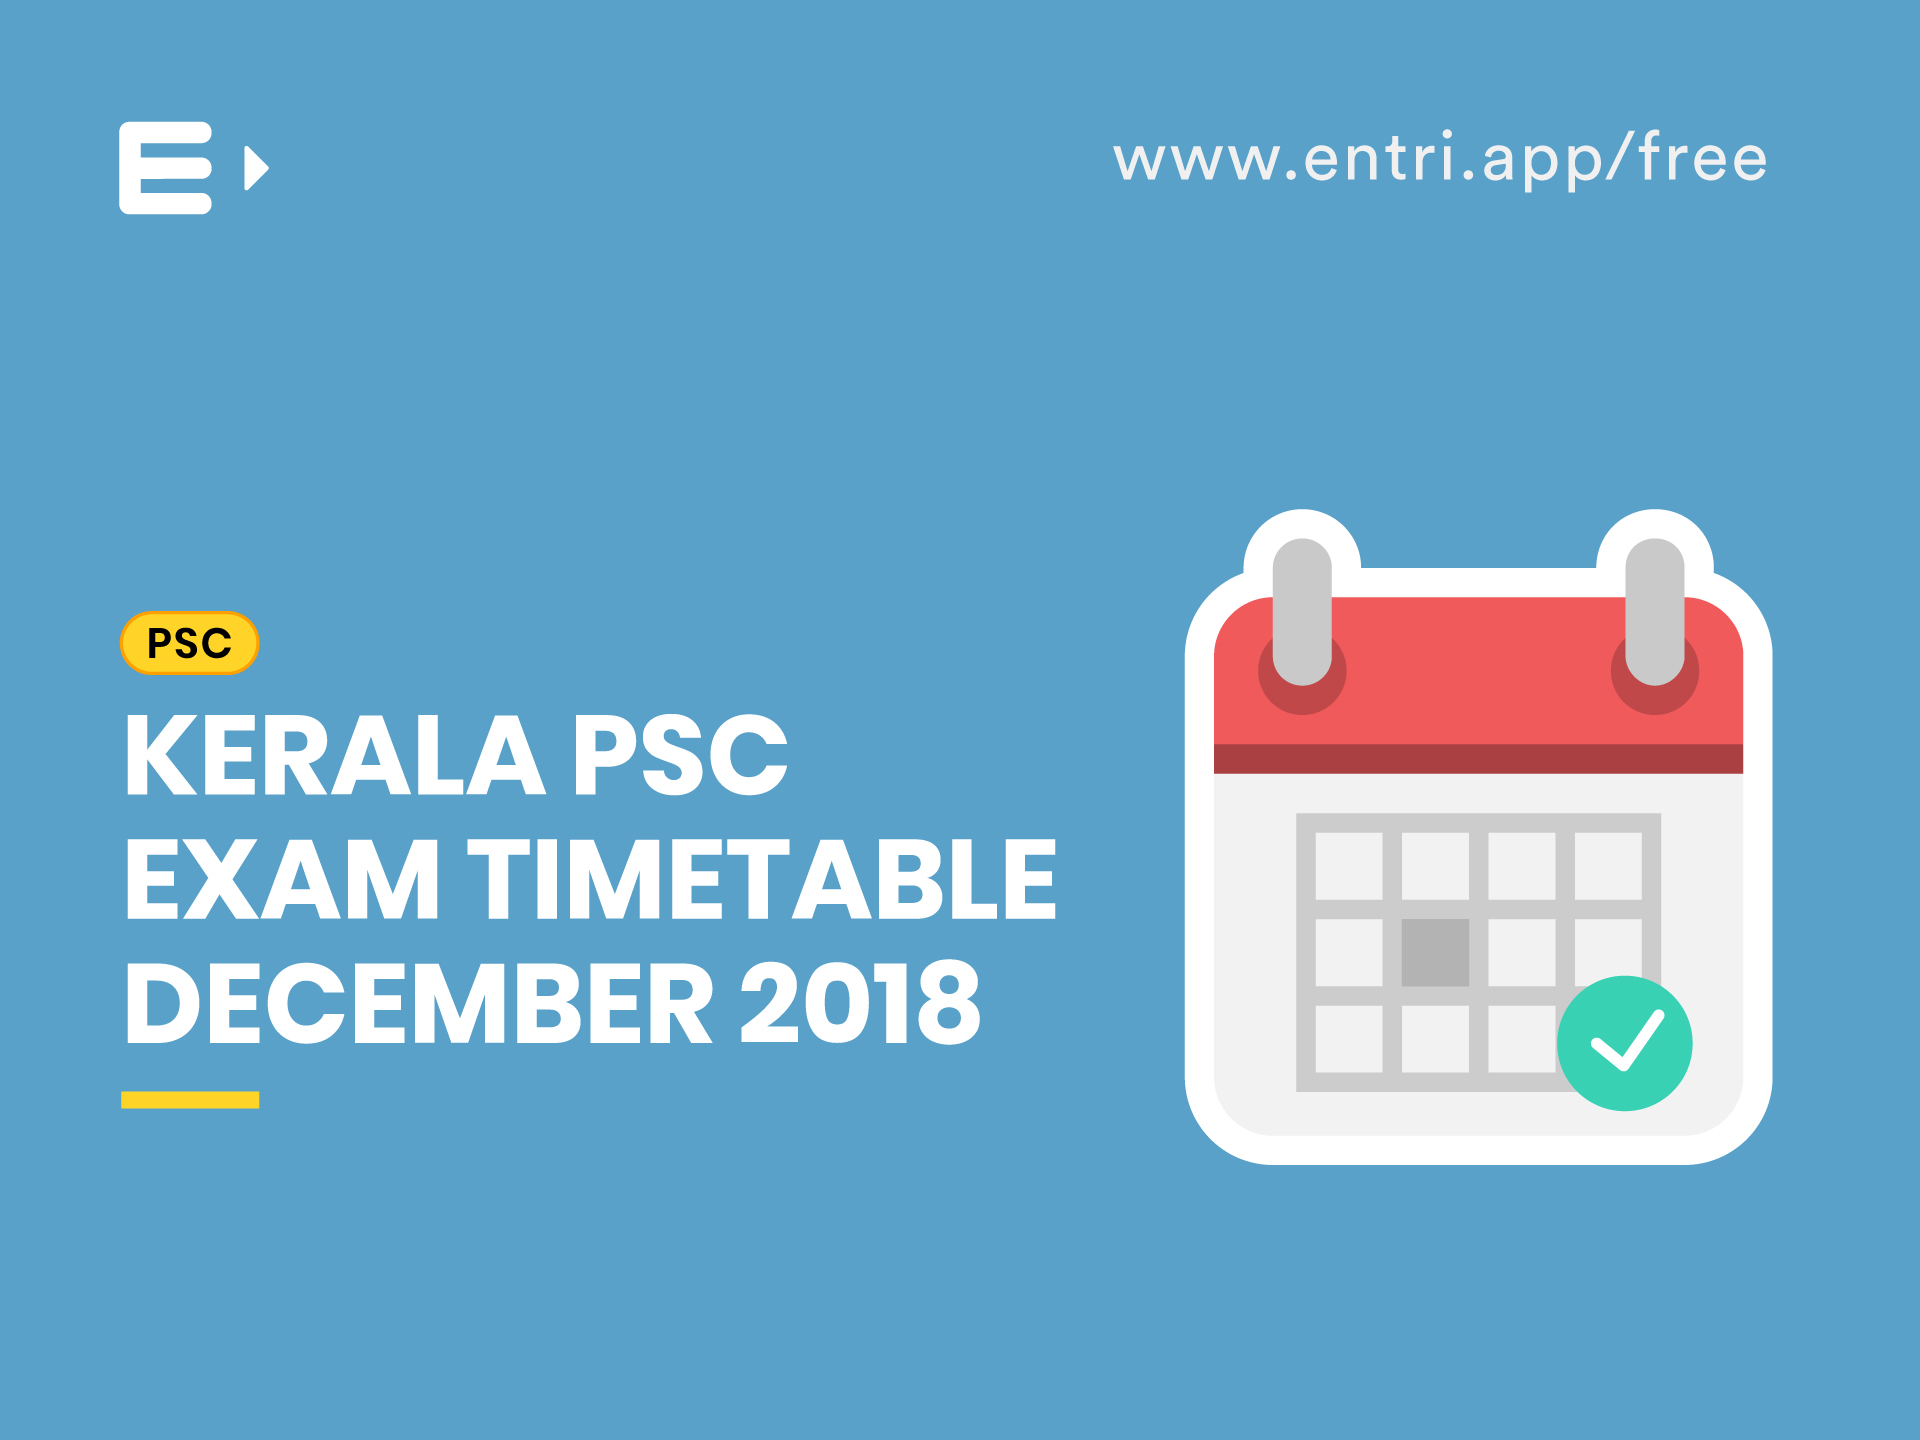 Kerala PSC Exam Timetable December 2018. Neenu. Posted on October 5, 2018  October 9, 2018; 1 minute read